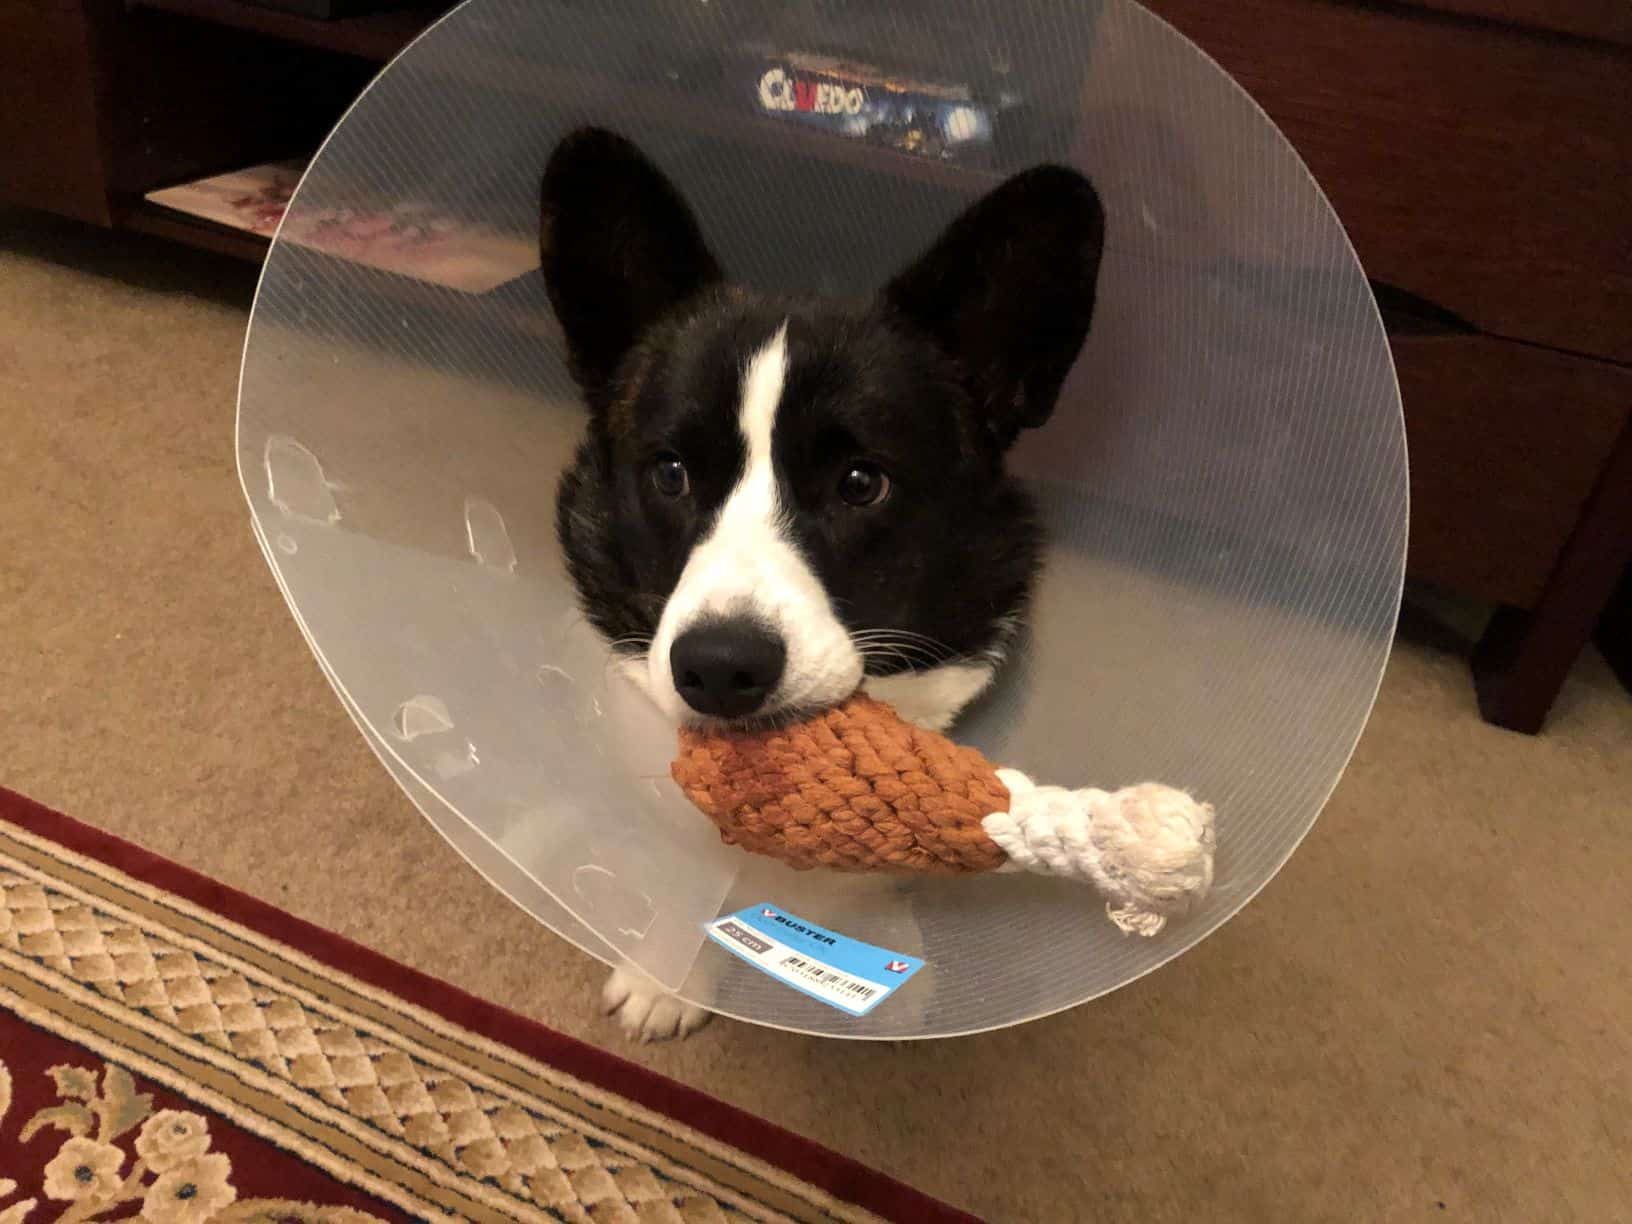 Olliver corgi puppy biting onto drumstick toy with E-collar on